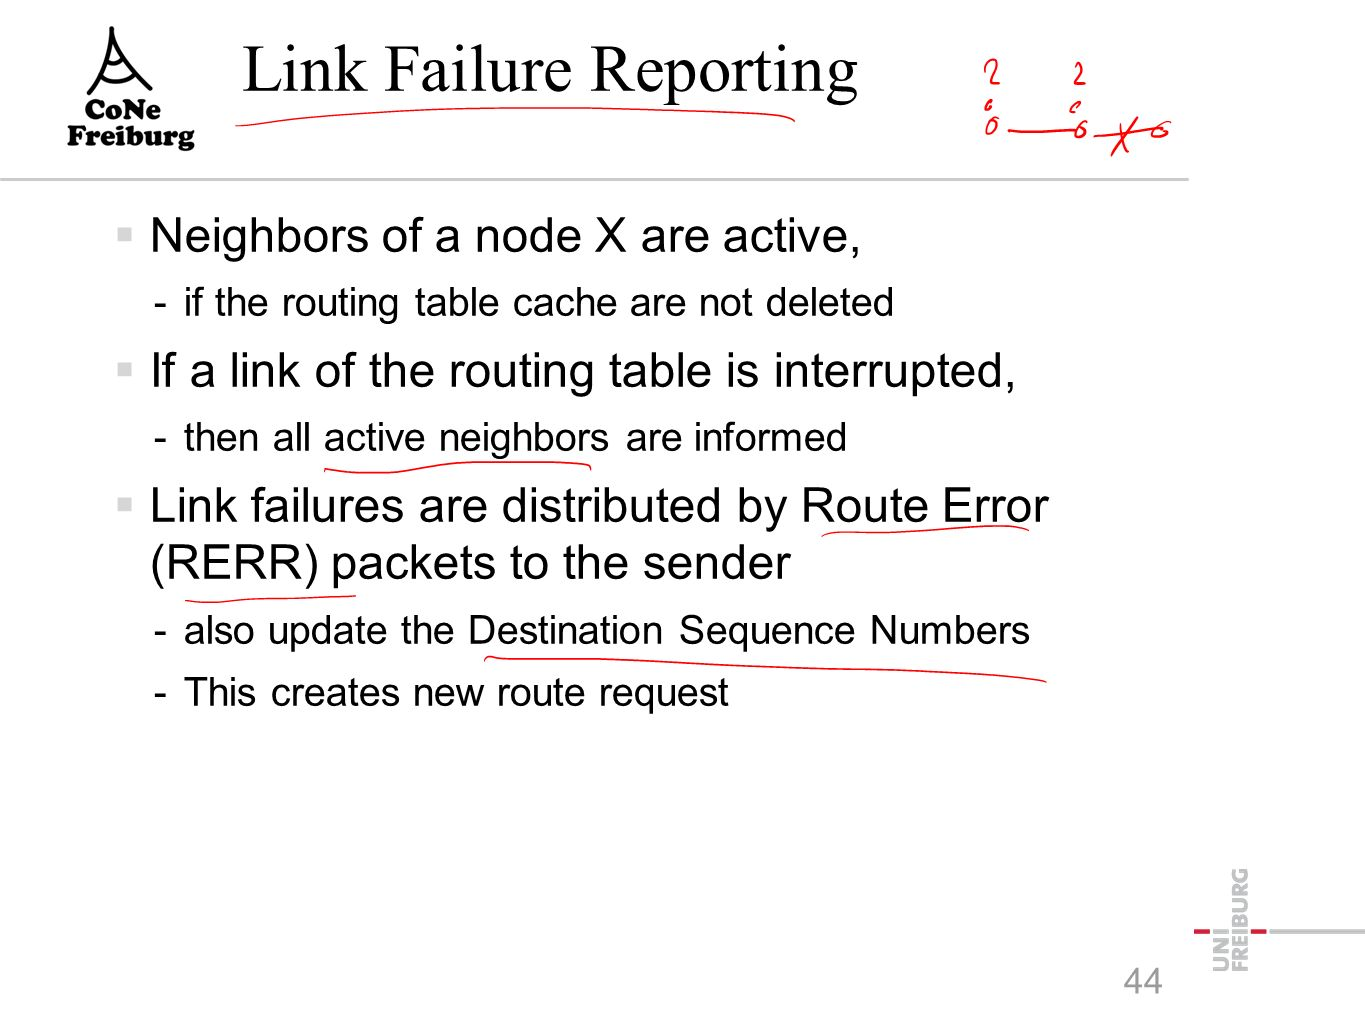 Link Failure Reporting  Neighbors of a node X are active, -if the routing table cache are not deleted  If a link of the routing table is interrupted, -then all active neighbors are informed  Link failures are distributed by Route Error (RERR) packets to the sender -also update the Destination Sequence Numbers -This creates new route request 44